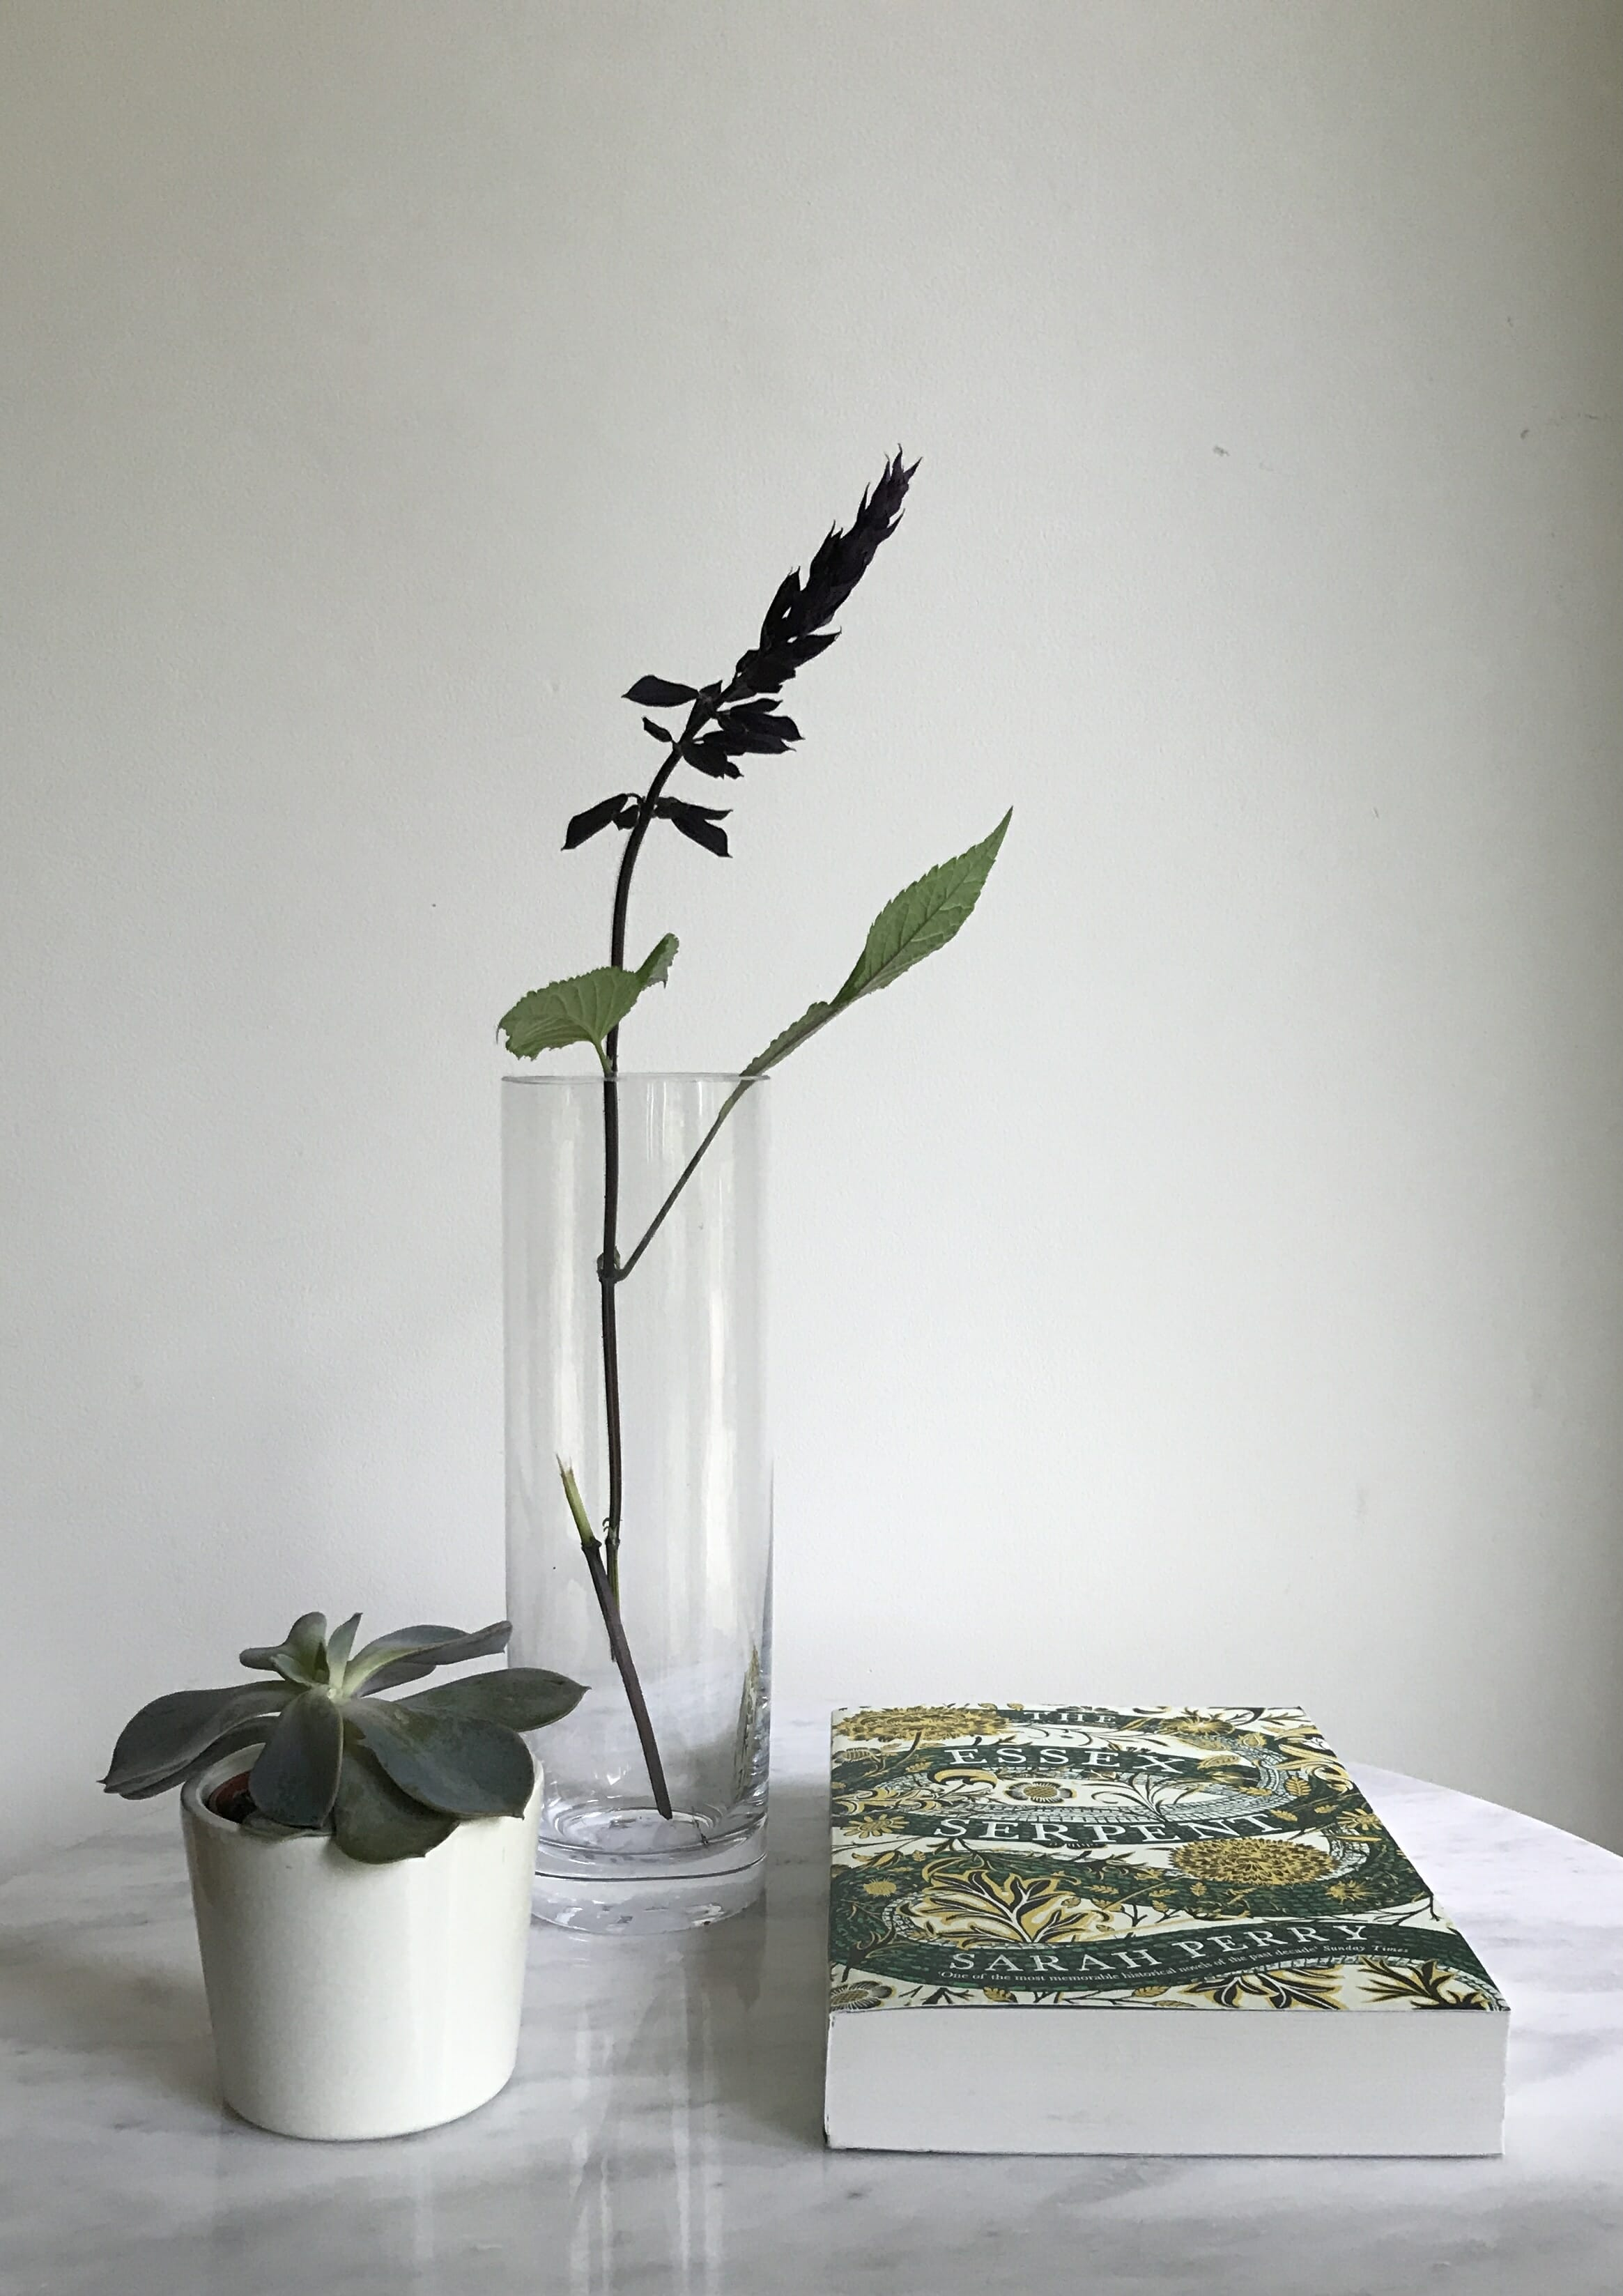 5 Health and Wellbeing Rituals - vase, book and potted plant on desk